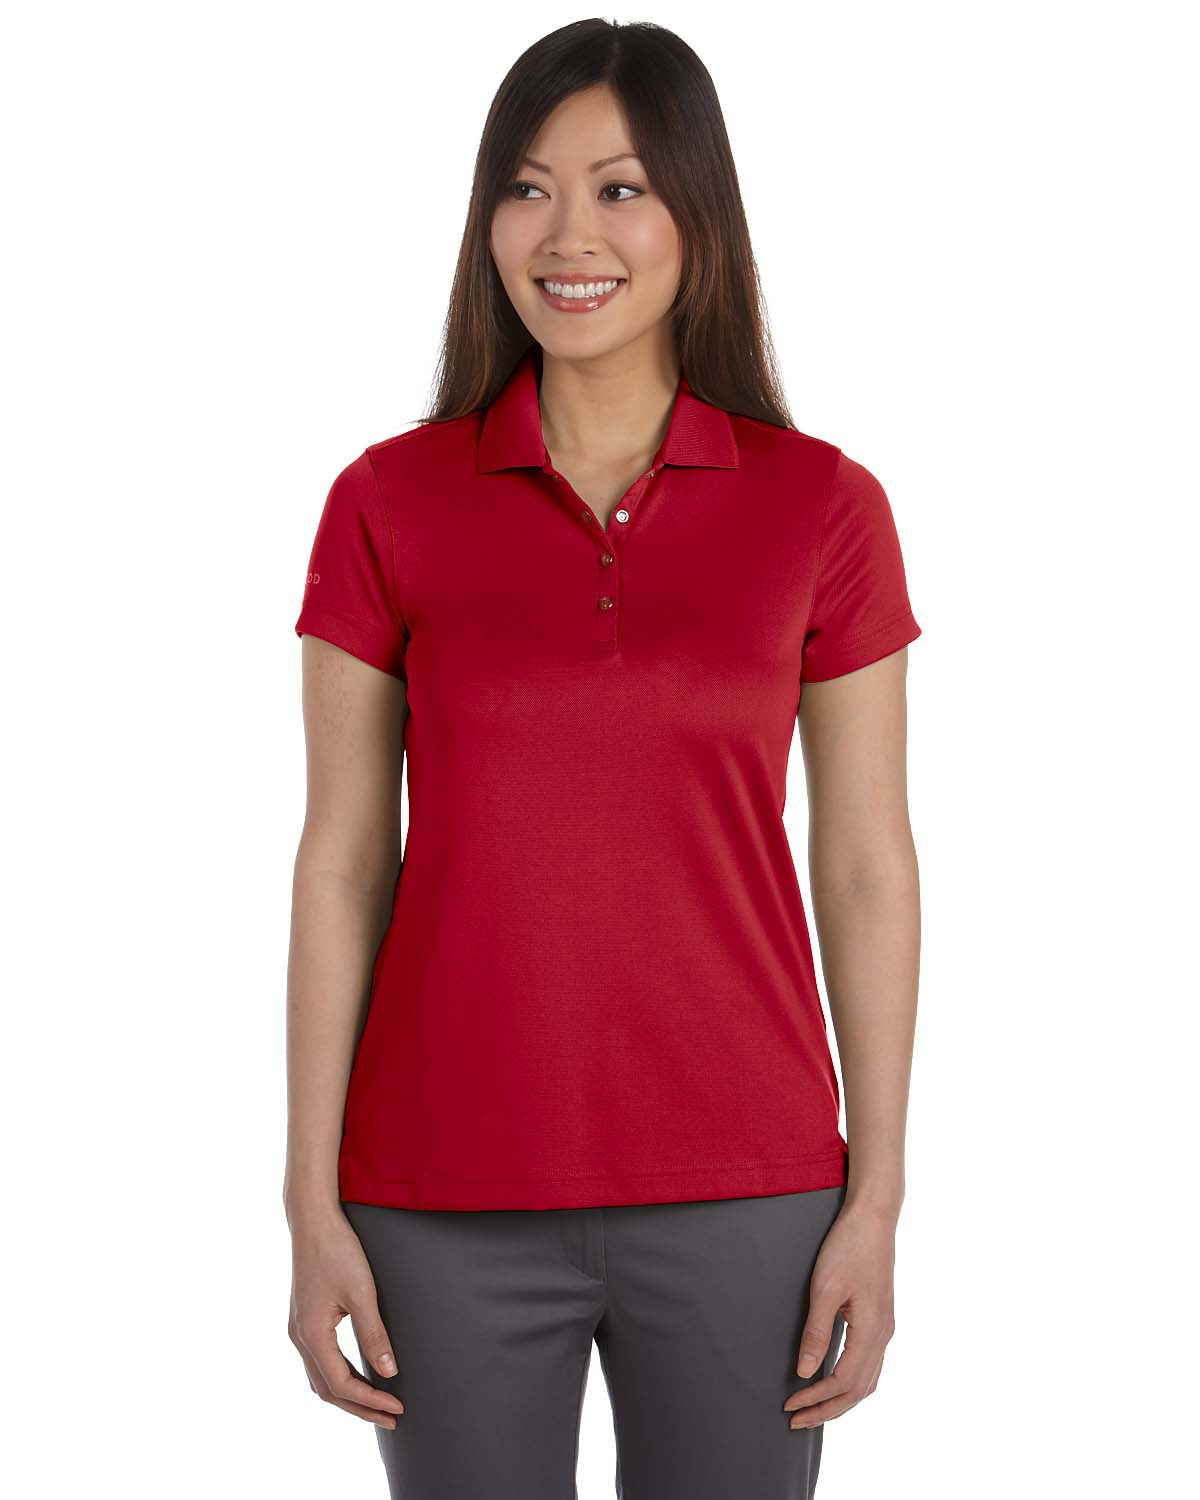 Izod 13Z0081  Women's Performance Golf Pique Polo